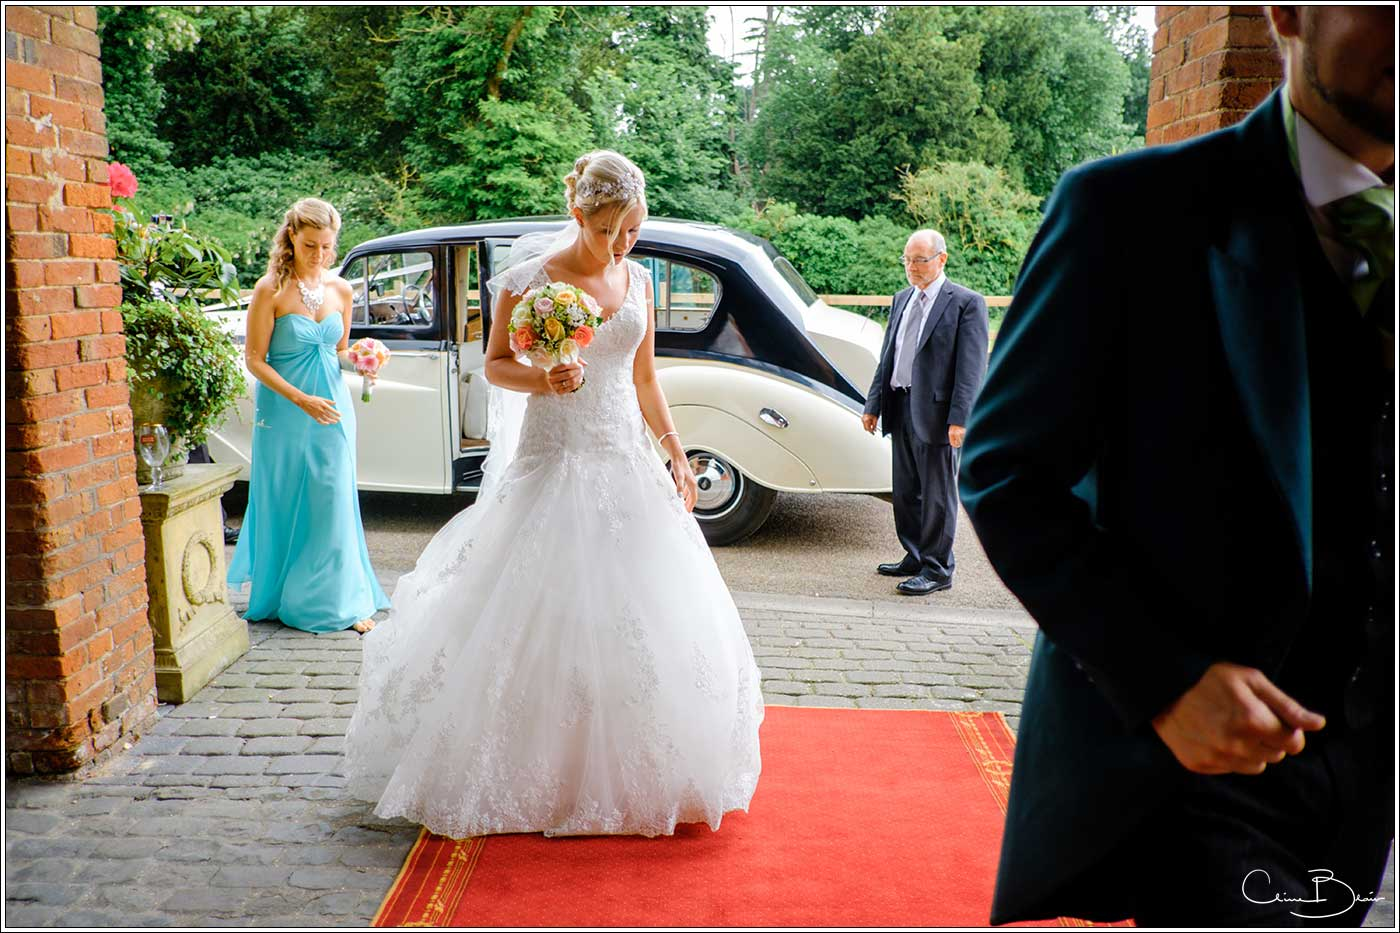 Coombe Abbey wedding photography showing bride entering The Abbeygate